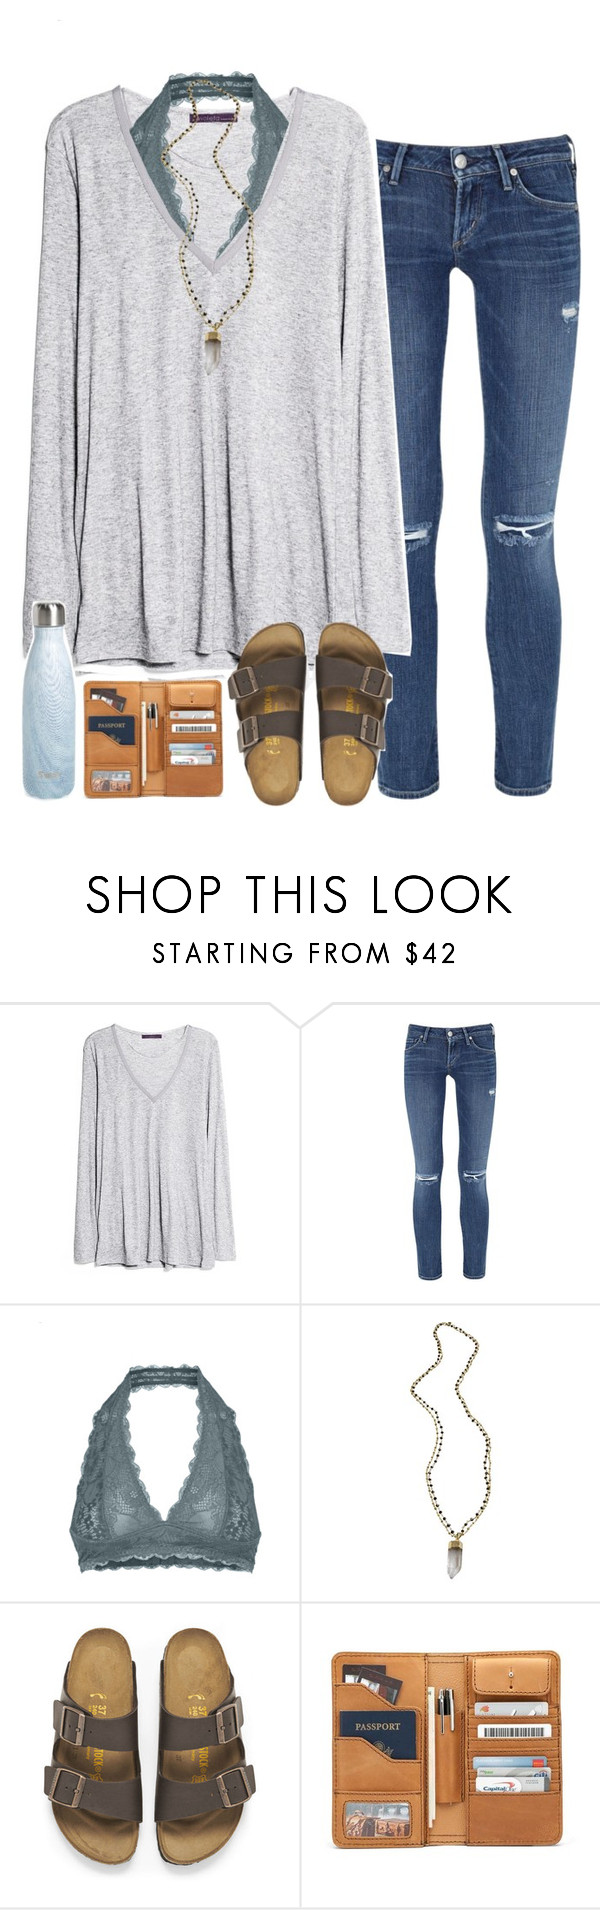 """follow me on stuff n style :))"" by sarahc01 ❤ liked on Polyvore featuring MANGO, Citizens of Humanity, Free People, Alexandra Beth Designs, Birkenstock and S'well"